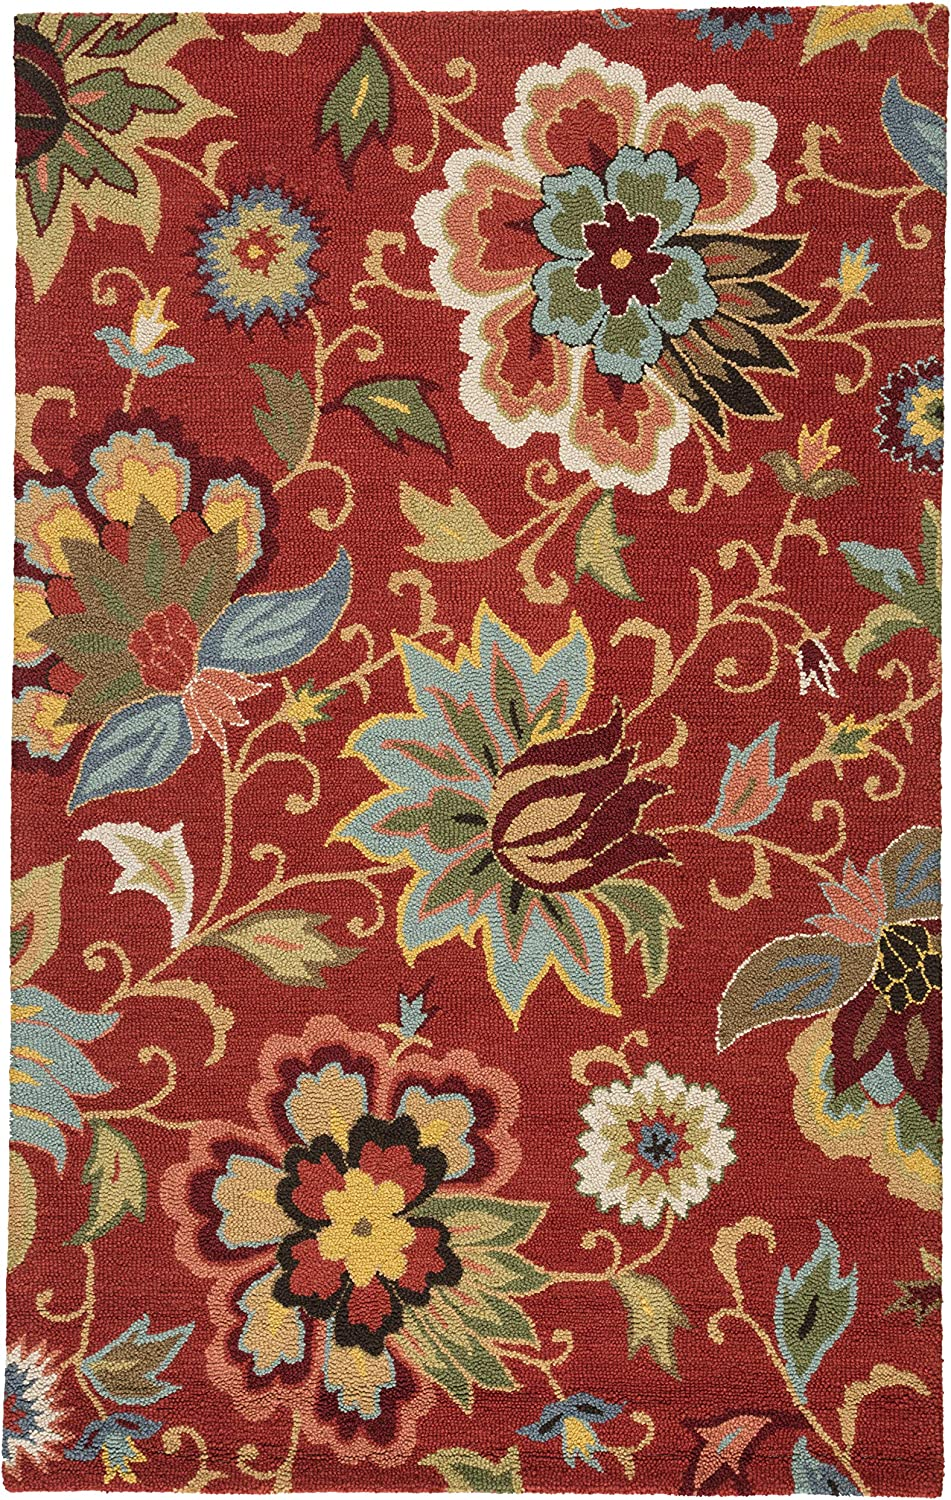 Amazon Com Jaipur Living Zamora Hand Tufted Floral Leaves Red Area Rug 3 6 X 5 6 Furniture Decor